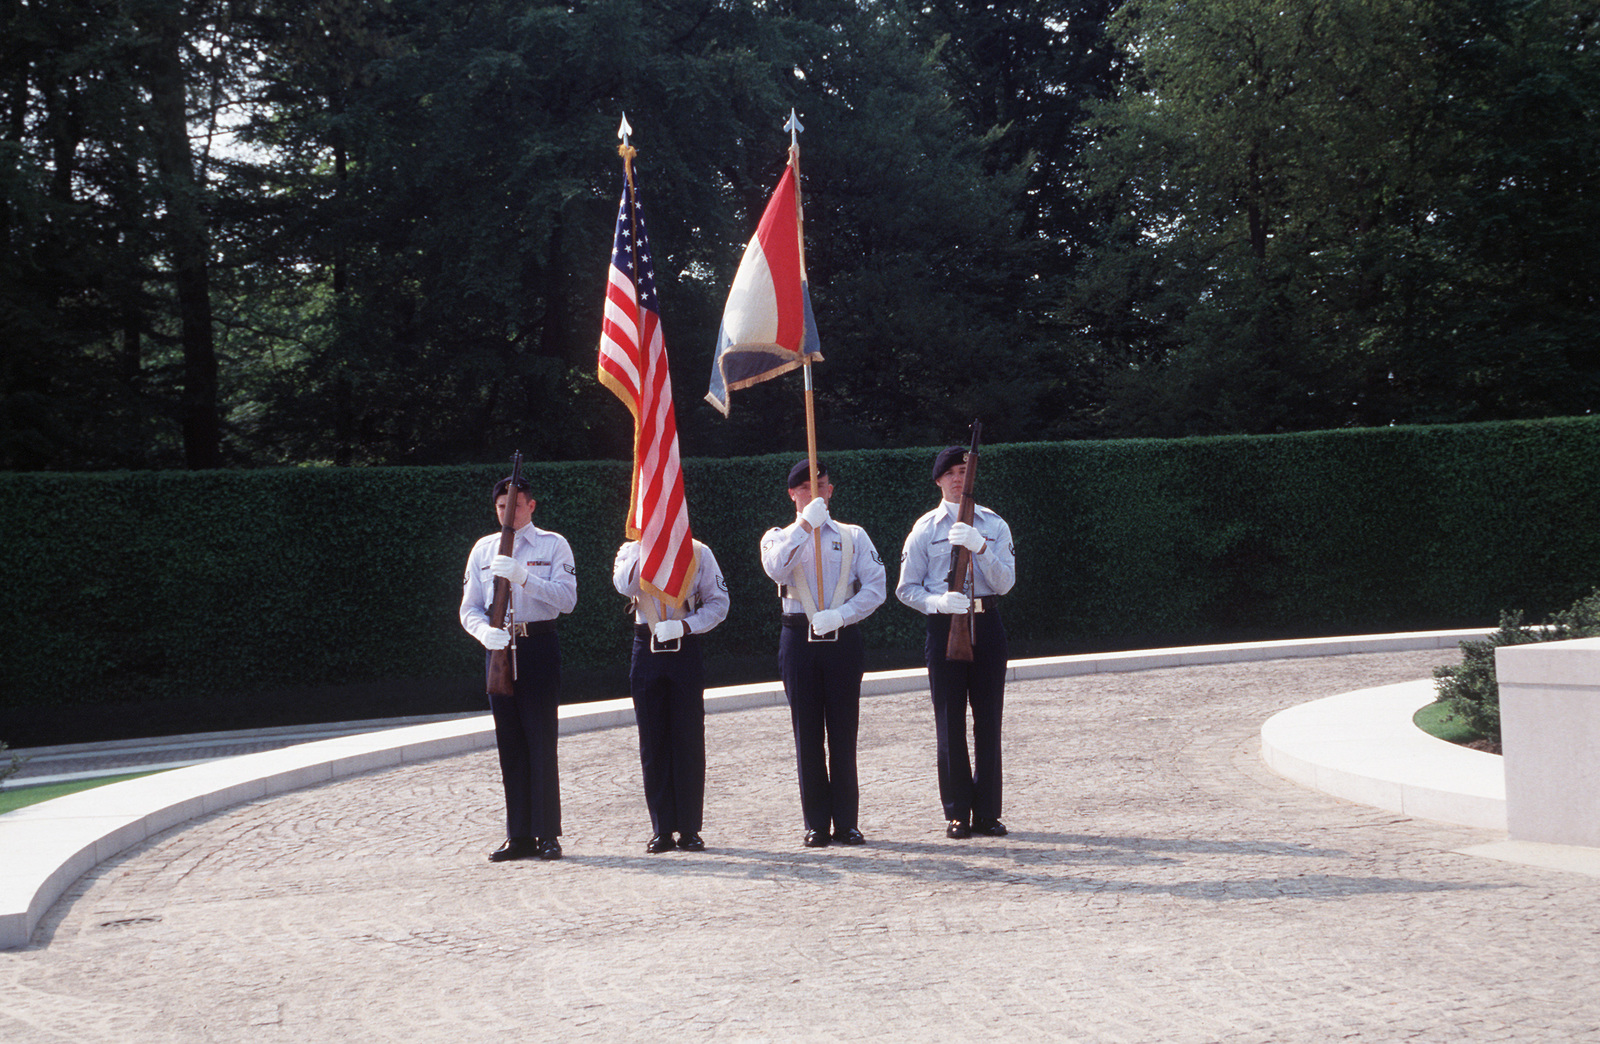 Members of the 86th Fighter Wing Honor Guard, Ramstein Air Base, Germany post the Colors at the Victory in Europe Day celebrations at Hamm Military Cemetery in Luxembourg